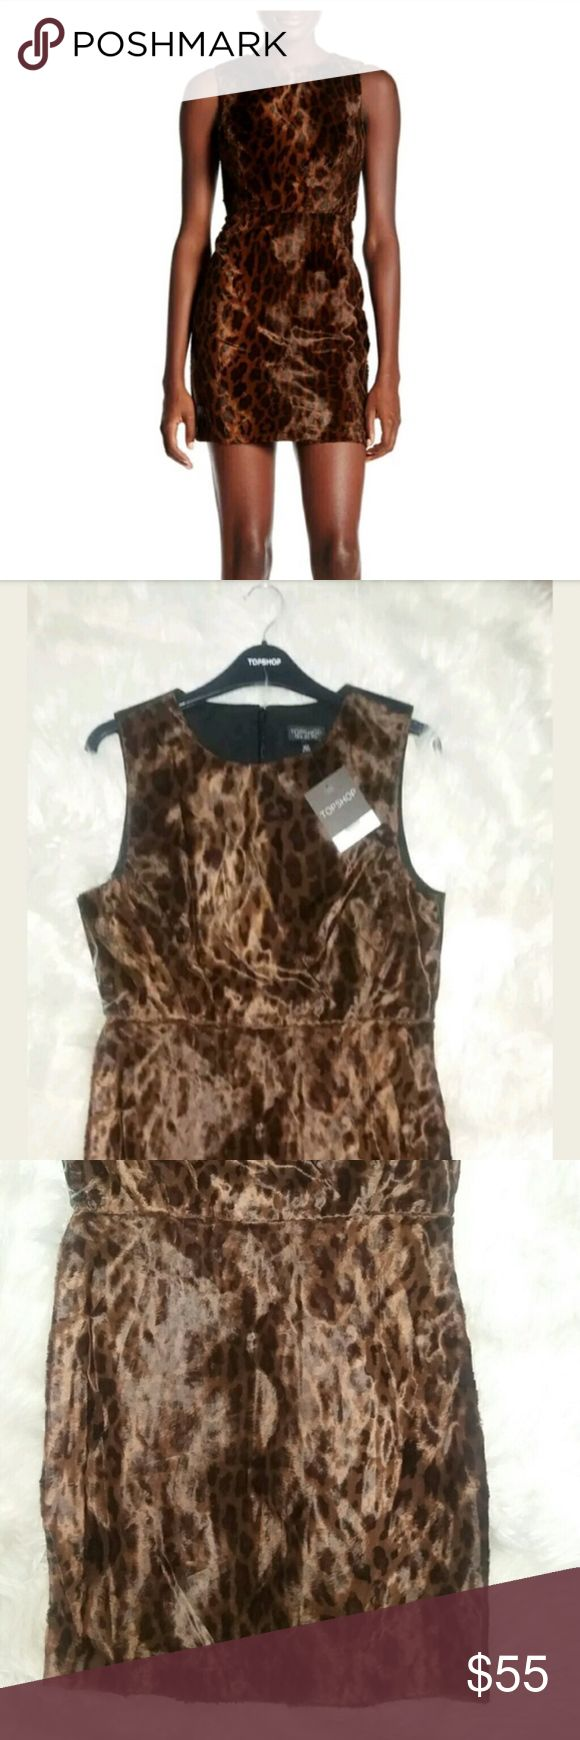 TOPSHOP Sleeveless Leopard Vegan Fur Mini Dress 8 TOPSHOP NEW Black Brown Sleeveless Leopard Faux Fur Mini Shift Dress US Size 8-  Sleeveless Originally $115. Back zip with hook with eye closure . Sheath silhouette  Allover faux fur print and texture . Fast shipping same or next business day Measurements Flat: 33in  length    Fiber Content  Shell (faux fur): 47% cotton, 40% viscose, 13% modal Contrast: 100% polyester Lining: 66% polyester, 34% cotton EUR 40, US 8, UK 12. Fits like a US 6-8…